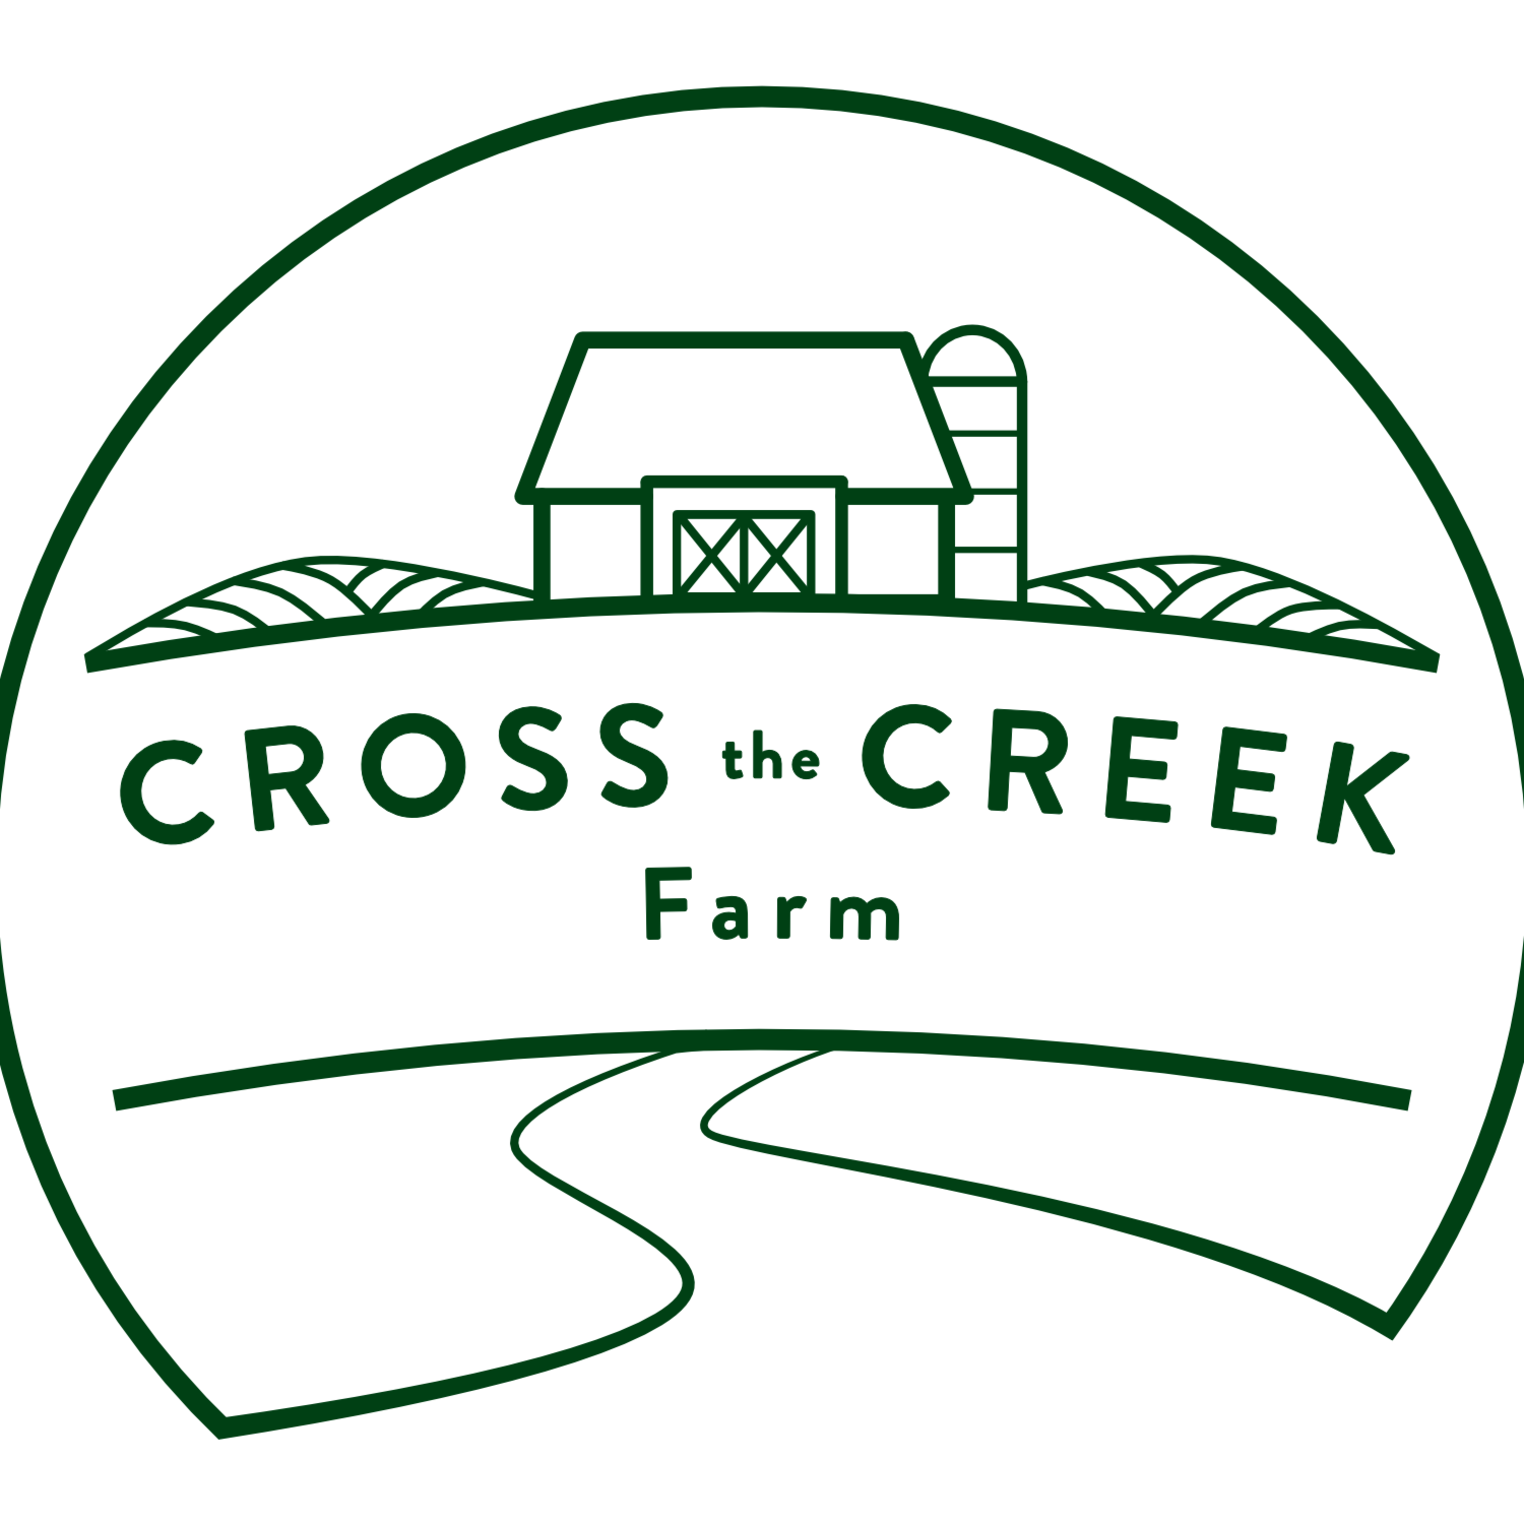 Cross the Creek Farm